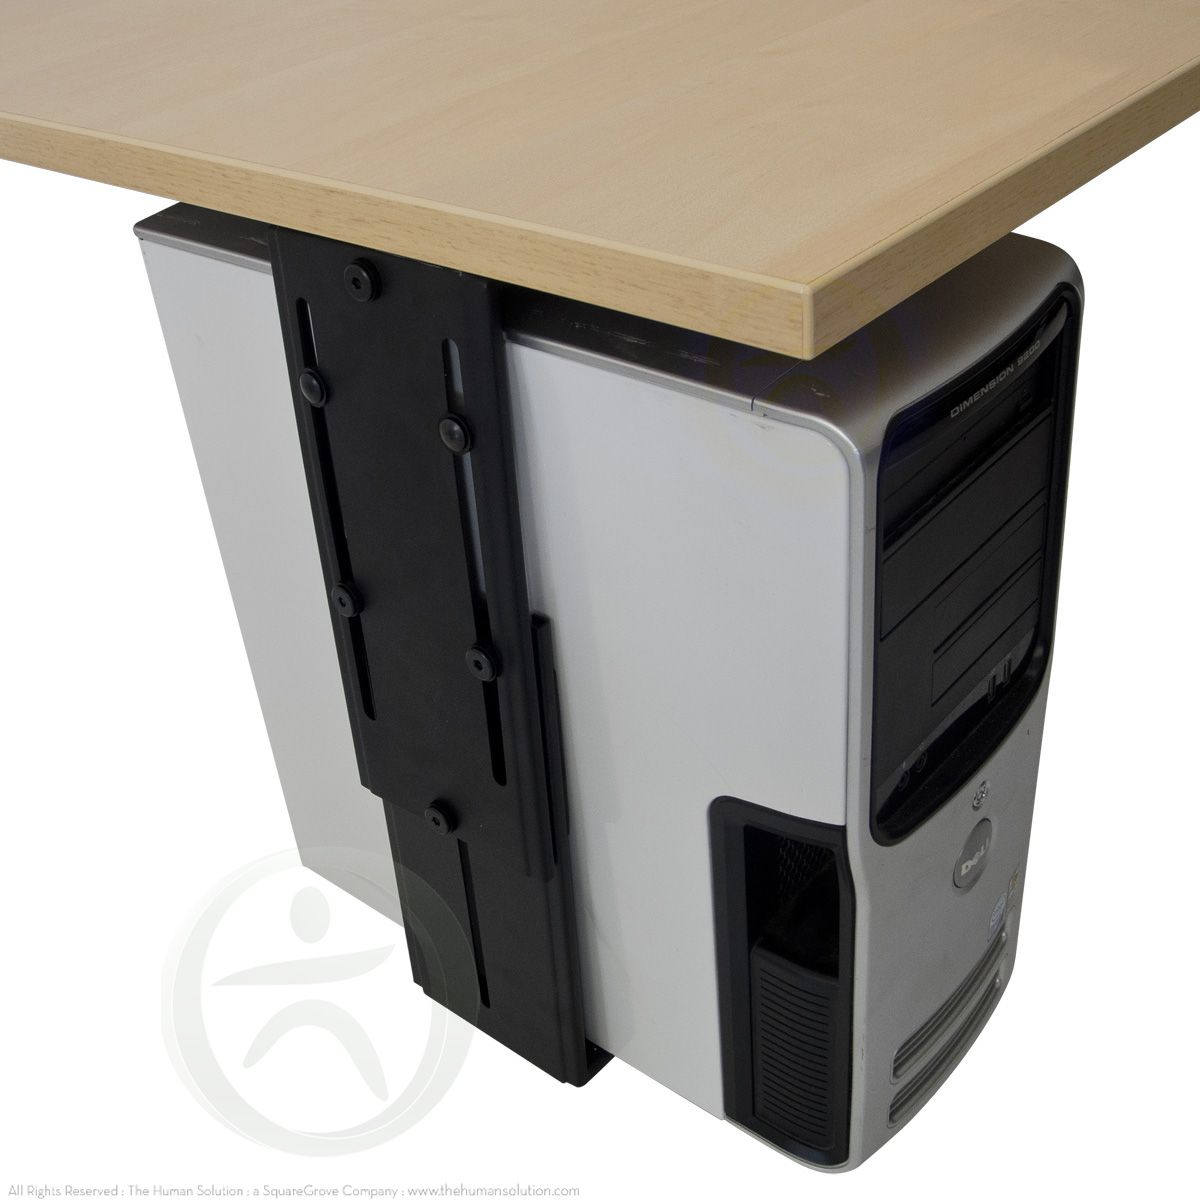 The UpLift CPU Holder is a great addition to any height adjustable desk to ensure your cables aren't stretched and pulled when using your desk's height adjustment capabilities.